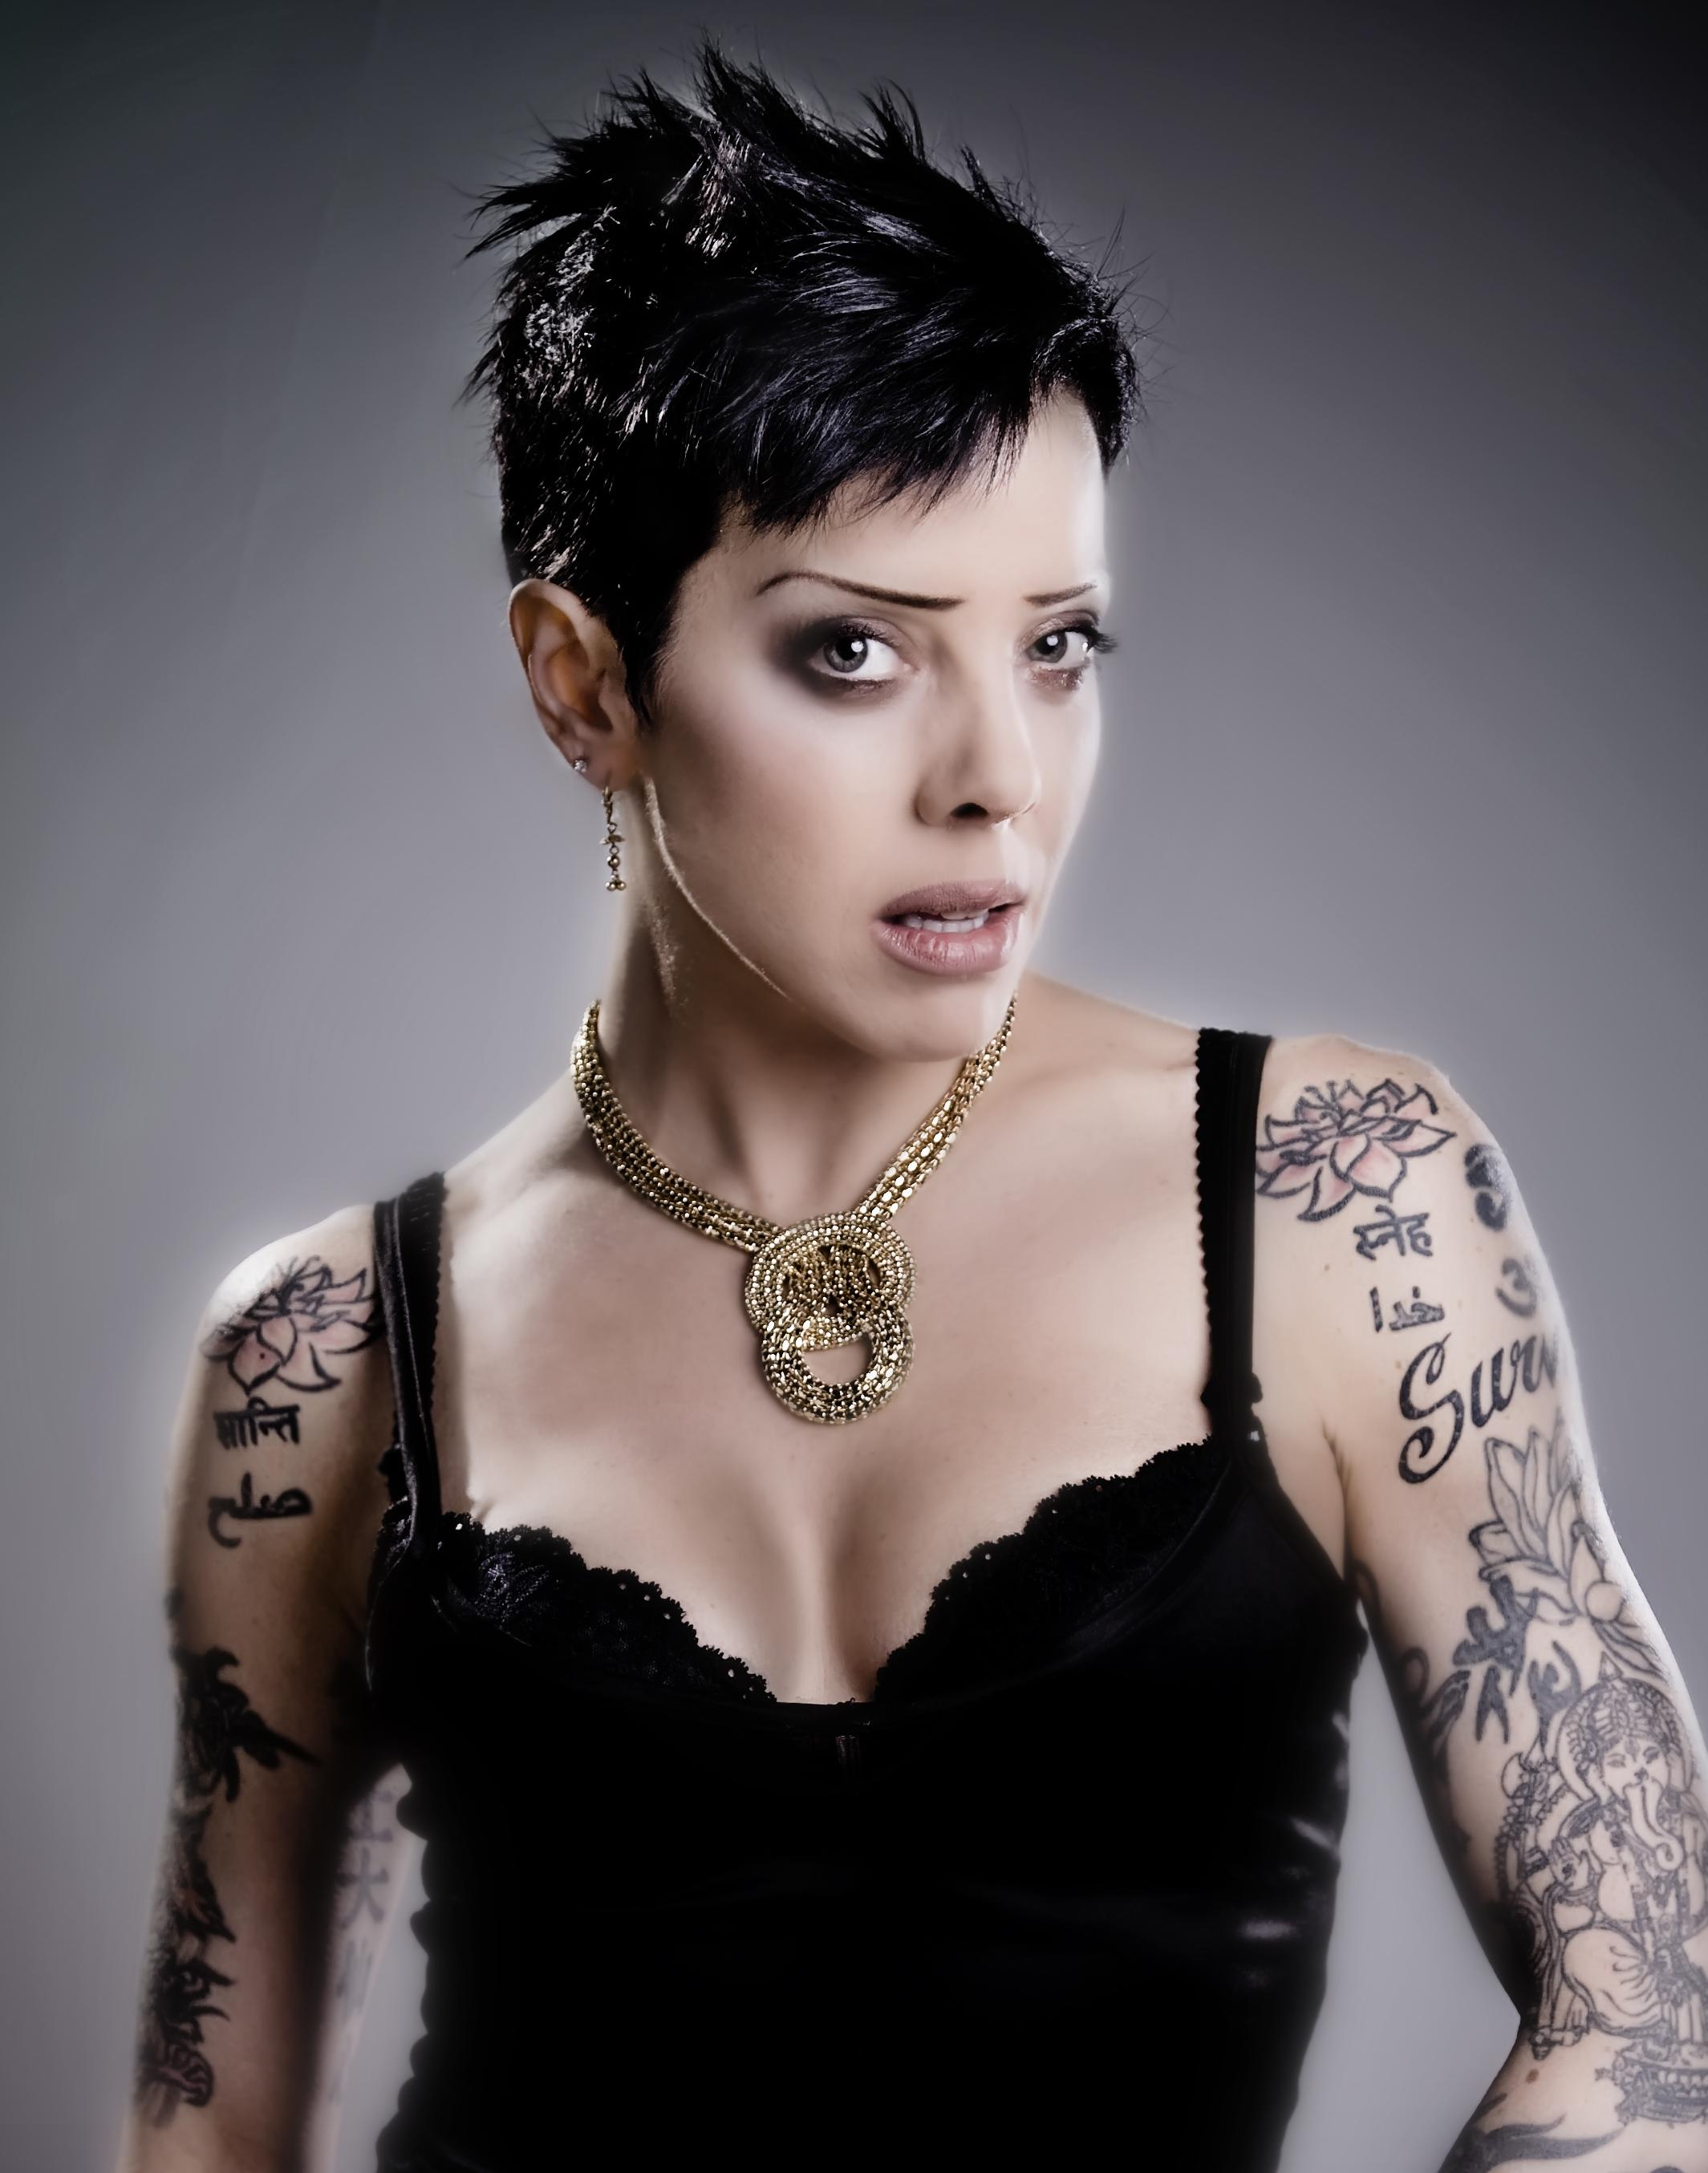 Opinion Bif naked com think, that